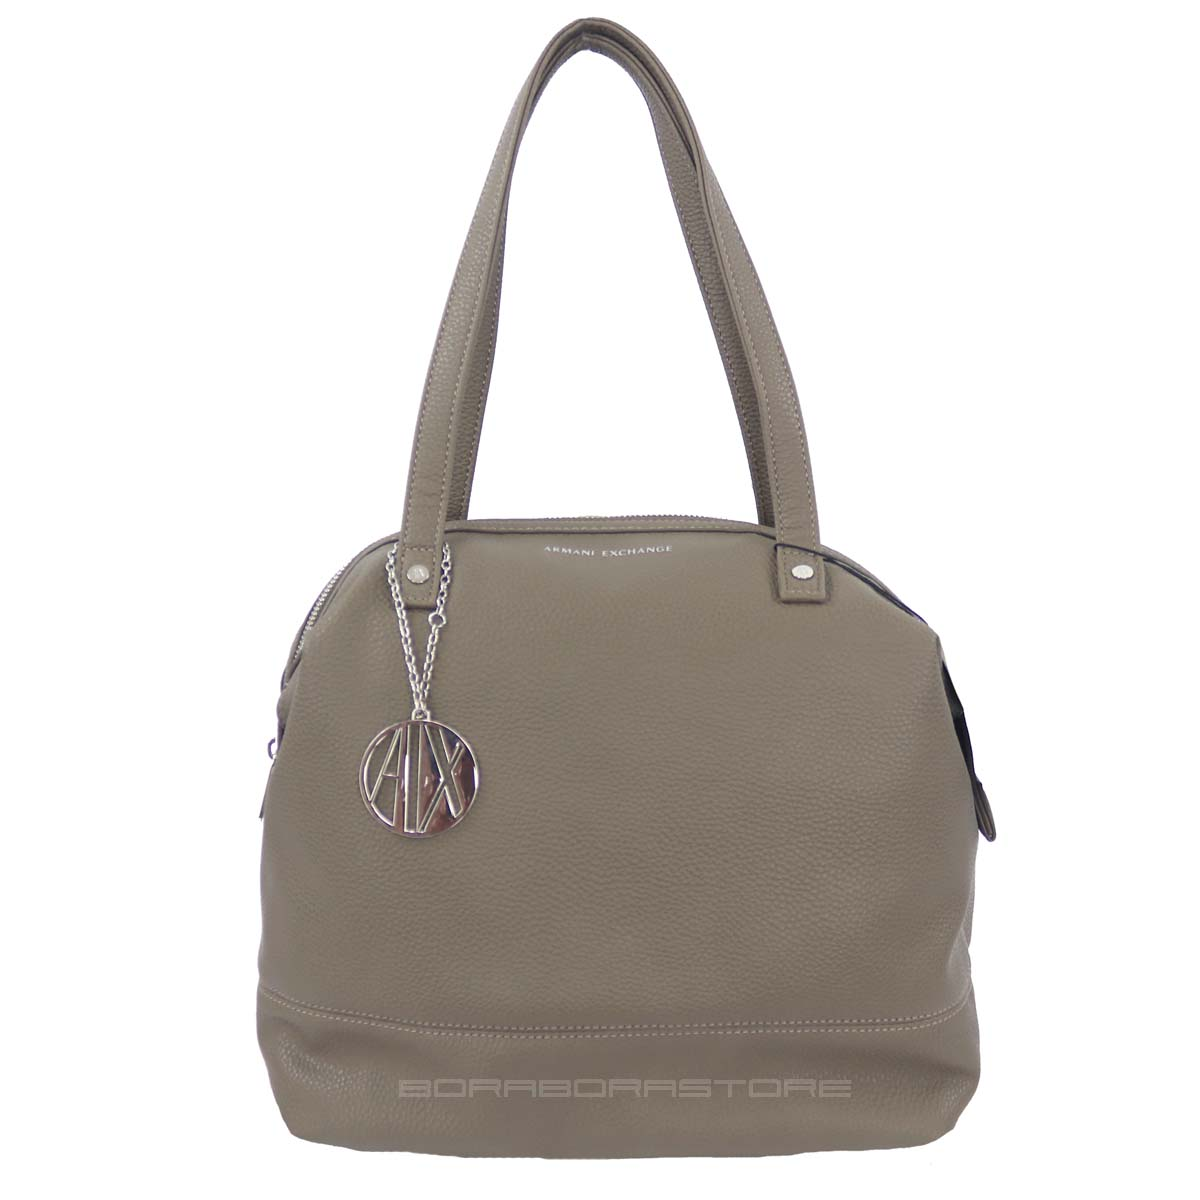 Armani Exchange Woman tote bag 942238 cc723 taupe 8054524524605  36a8956c438d3